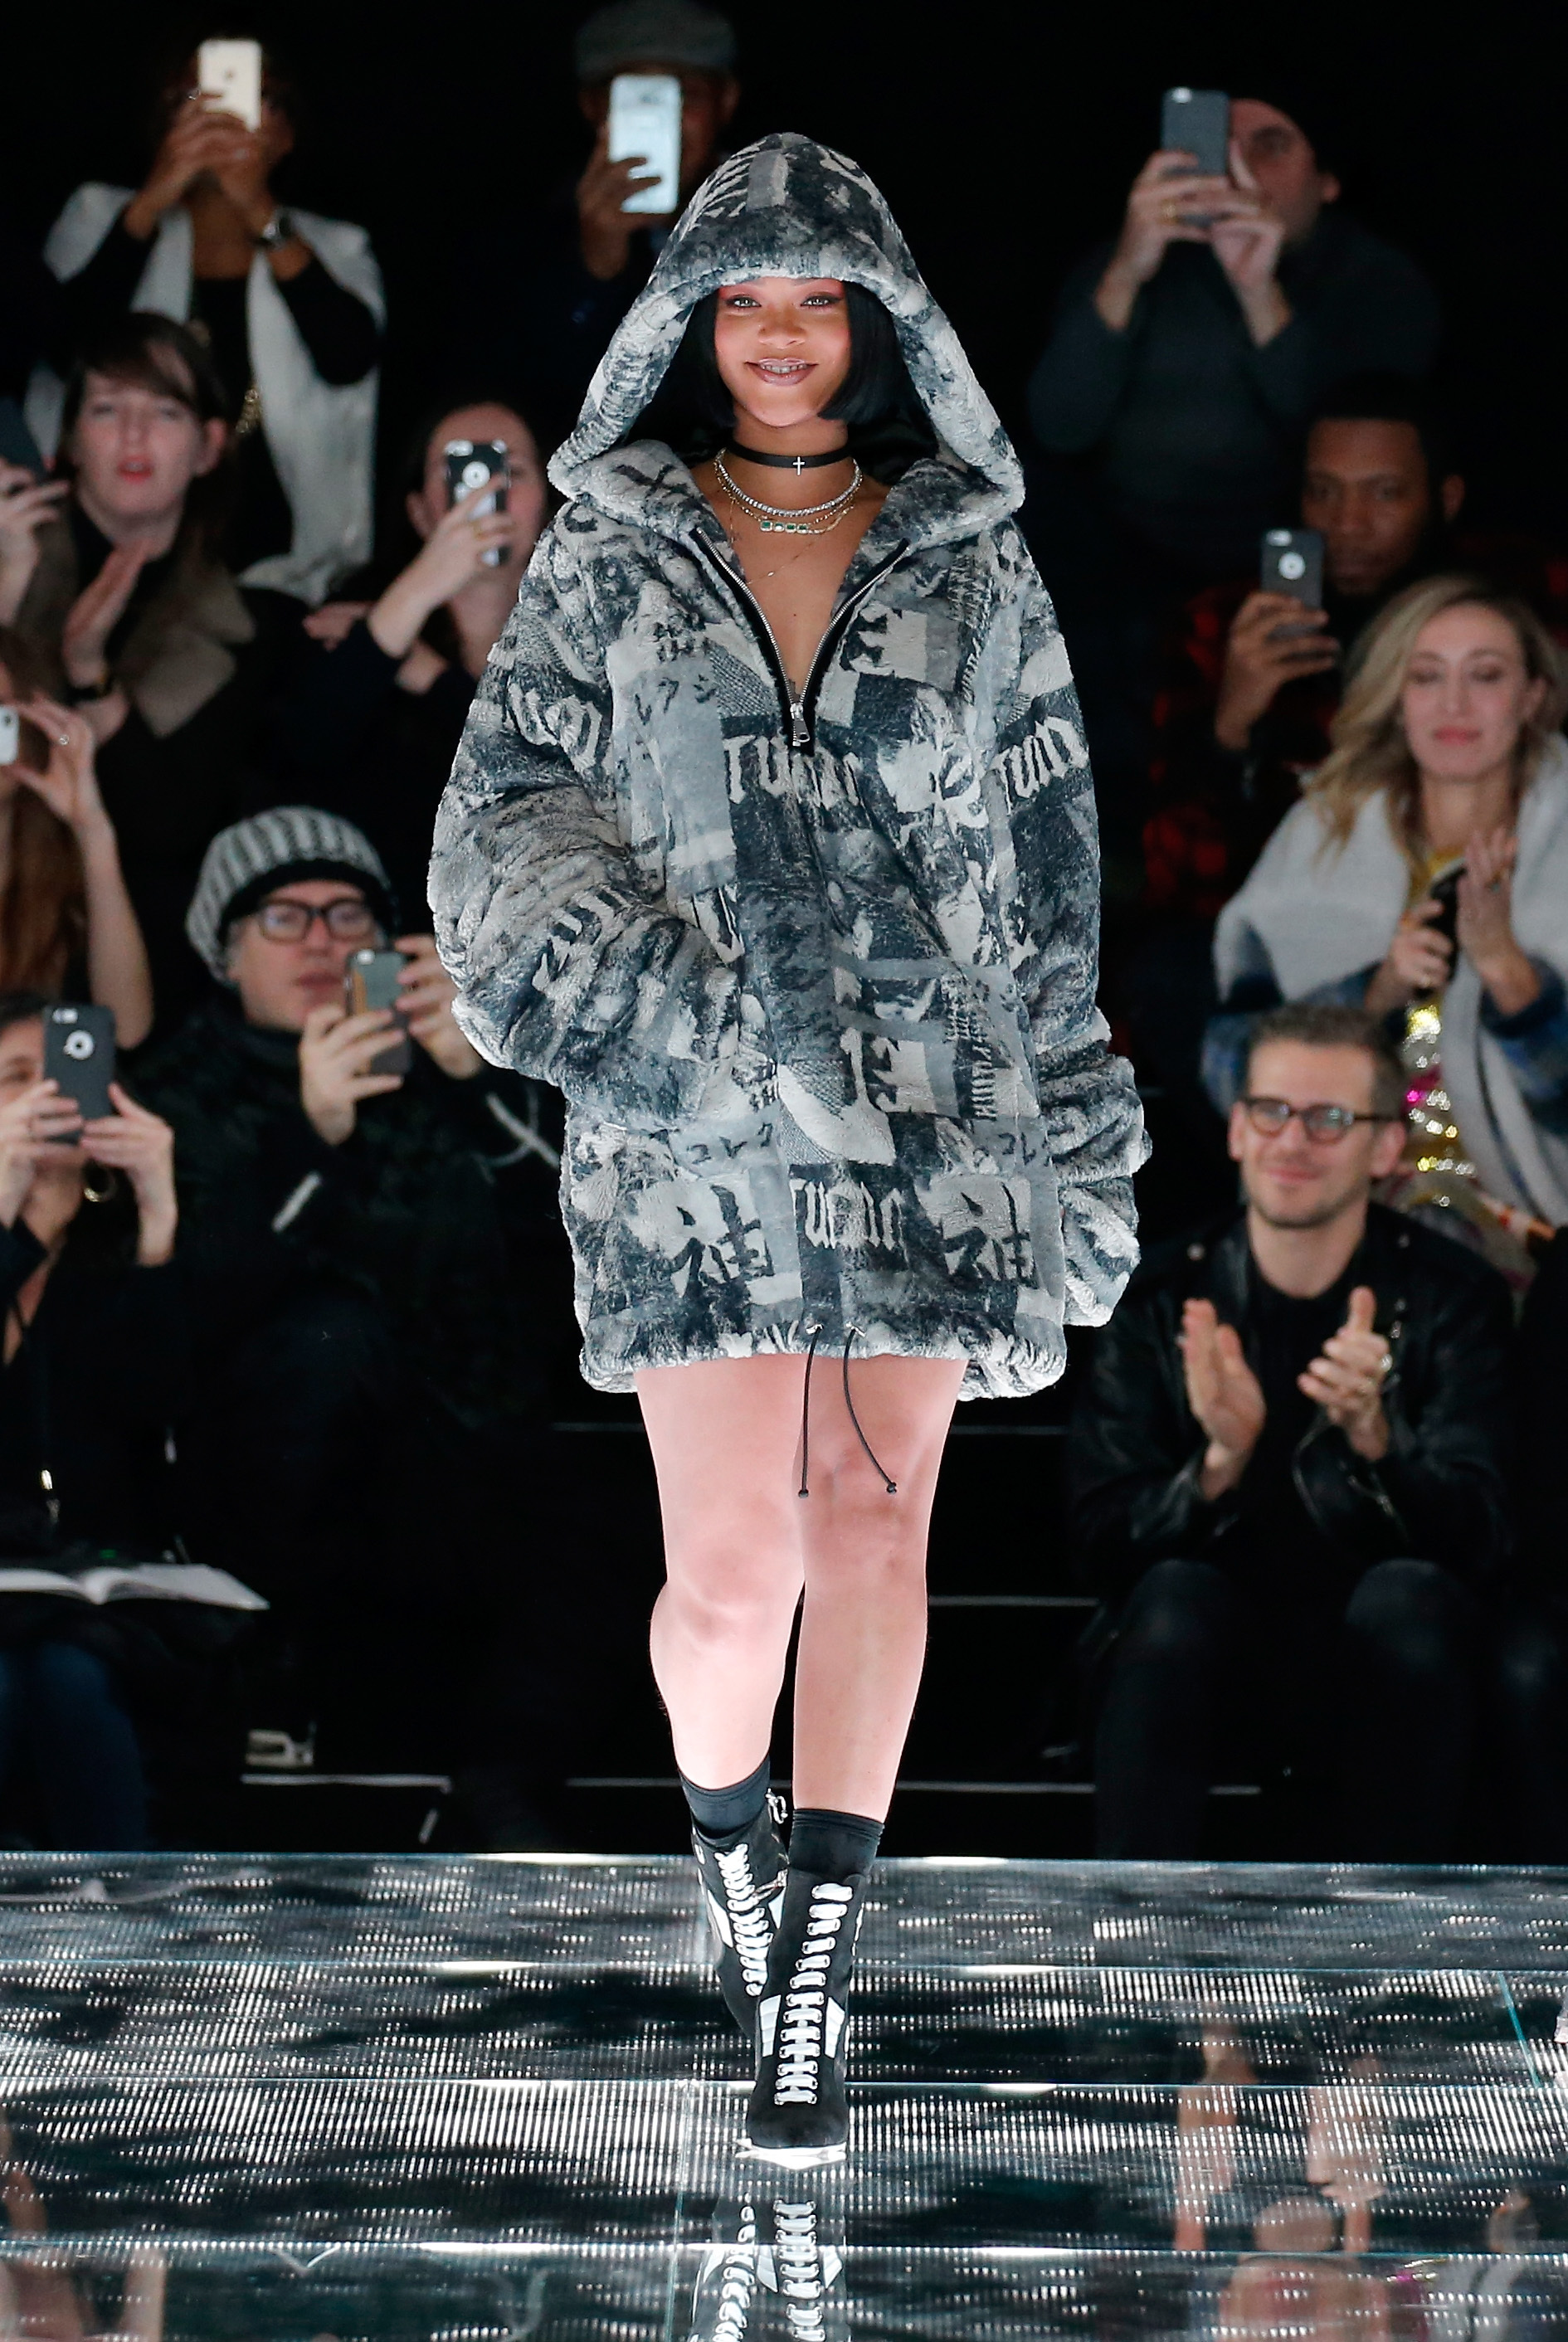 PUMA by Rihanna AW16 Collection Premieres at New York Fashion Week ... d4ded9a296